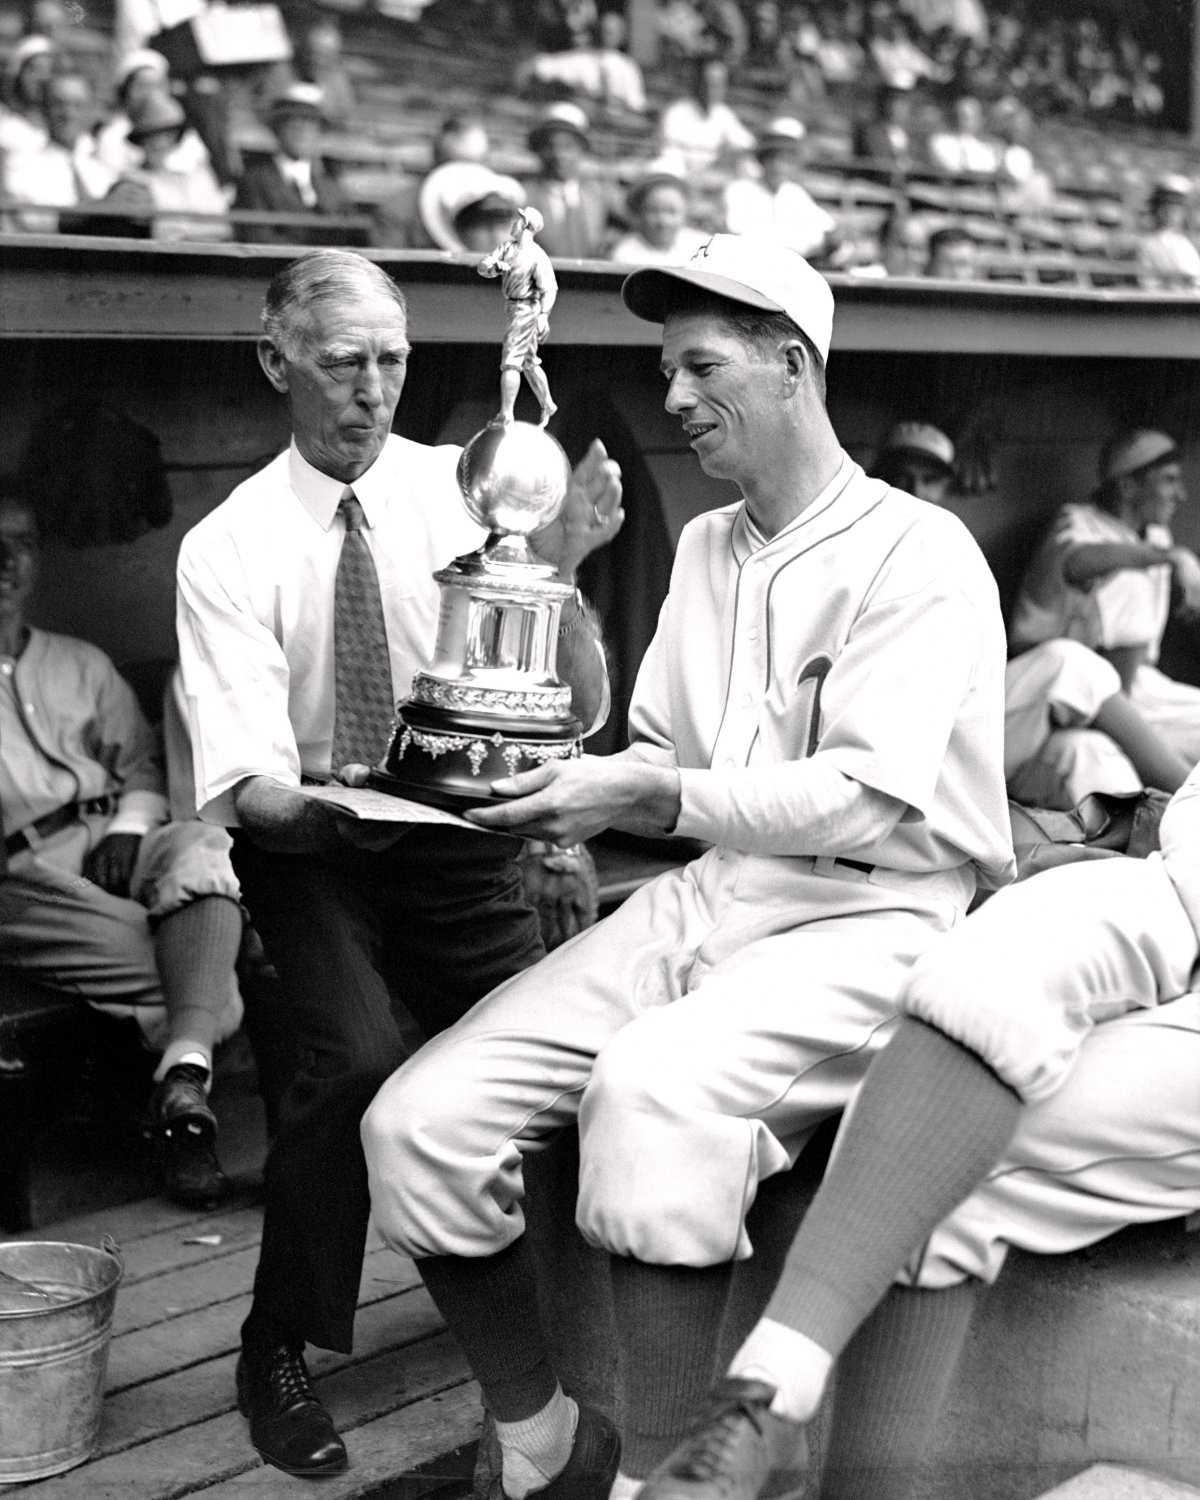 LEFTY GROVE & CONNIE MACK VIEW 1931 MOST VALUE PLAYER AWARD 8X10 PHOTO (ZY-447)